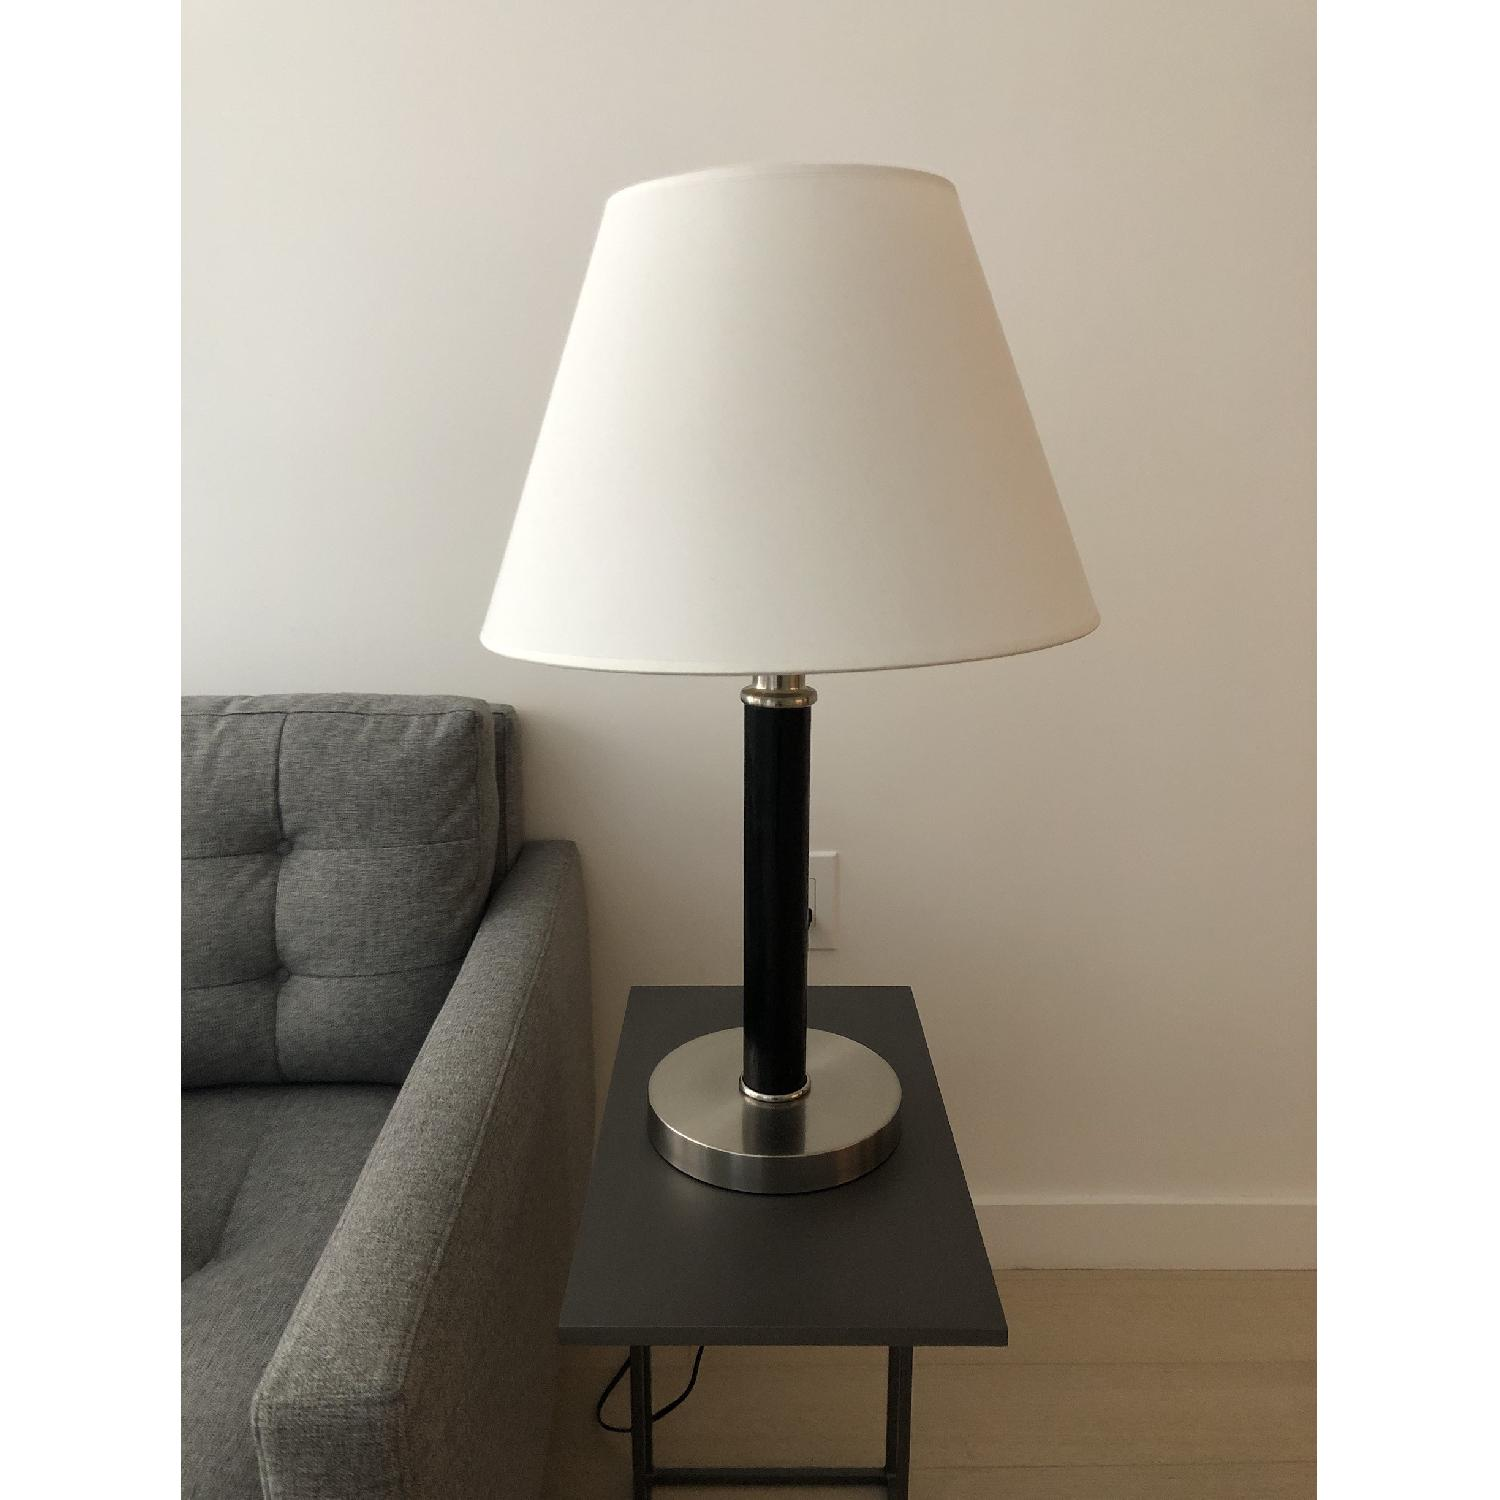 Ethan Allen Chrome Table Lamp in Wood Finish - image-1